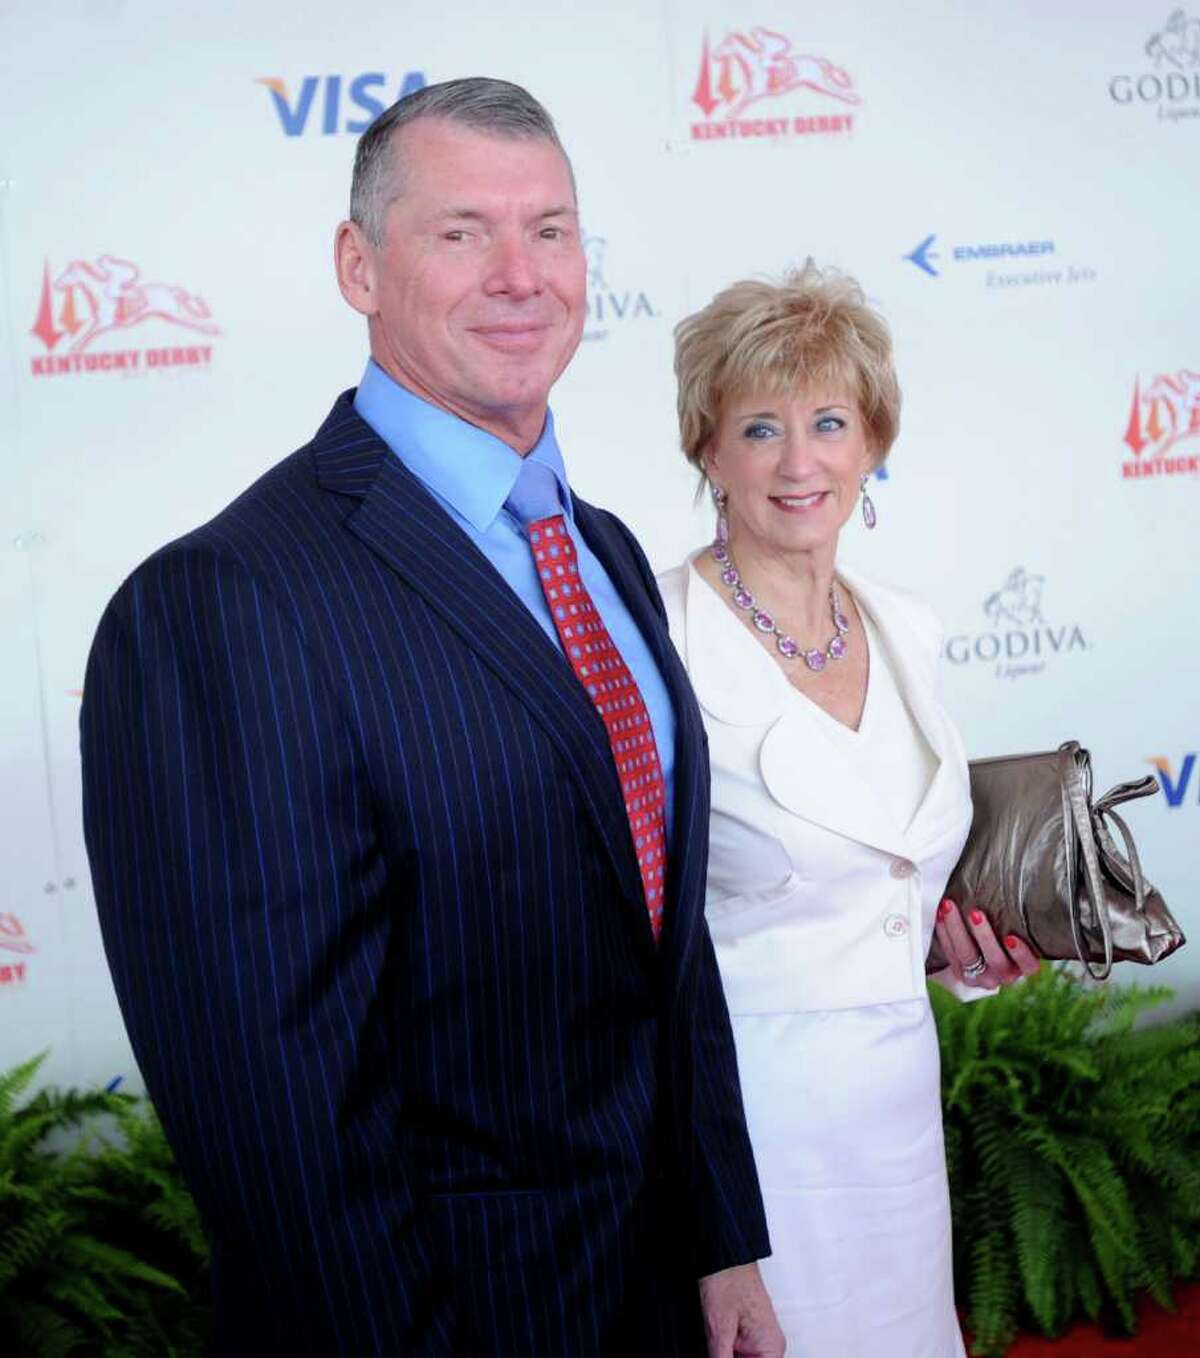 WWE Chairman Vince McMahon and his wife, Republican candidate for U.S. Senate Conn., Linda McMahon, attend the 134th running of the Kentucky Derby at Churchill Downs on May 3, 2008 in Louisville, Kentucky.